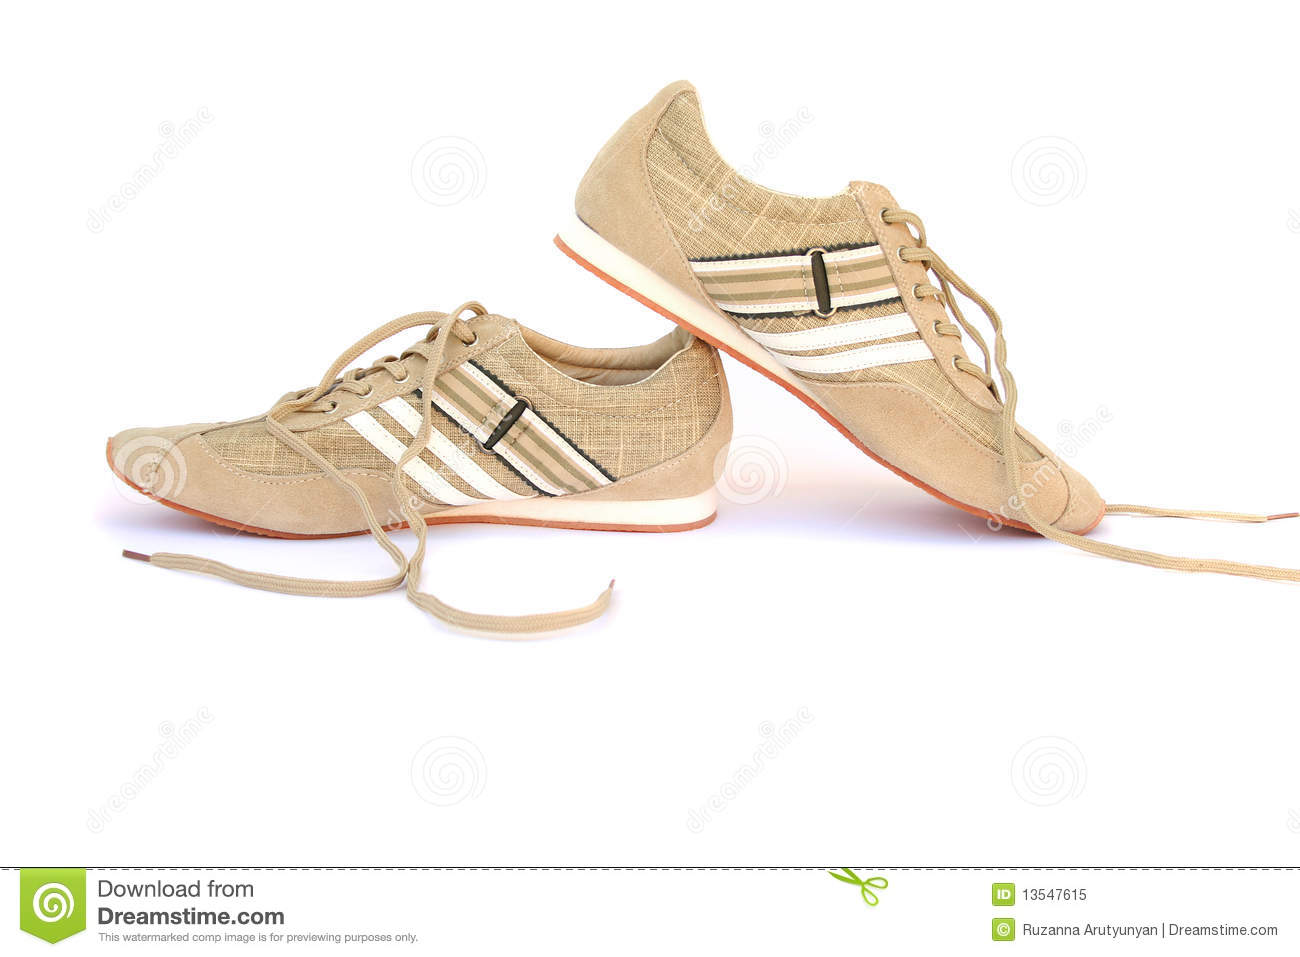 Snickers Shoes Royalty Free Stock Photo - Image: 13547615